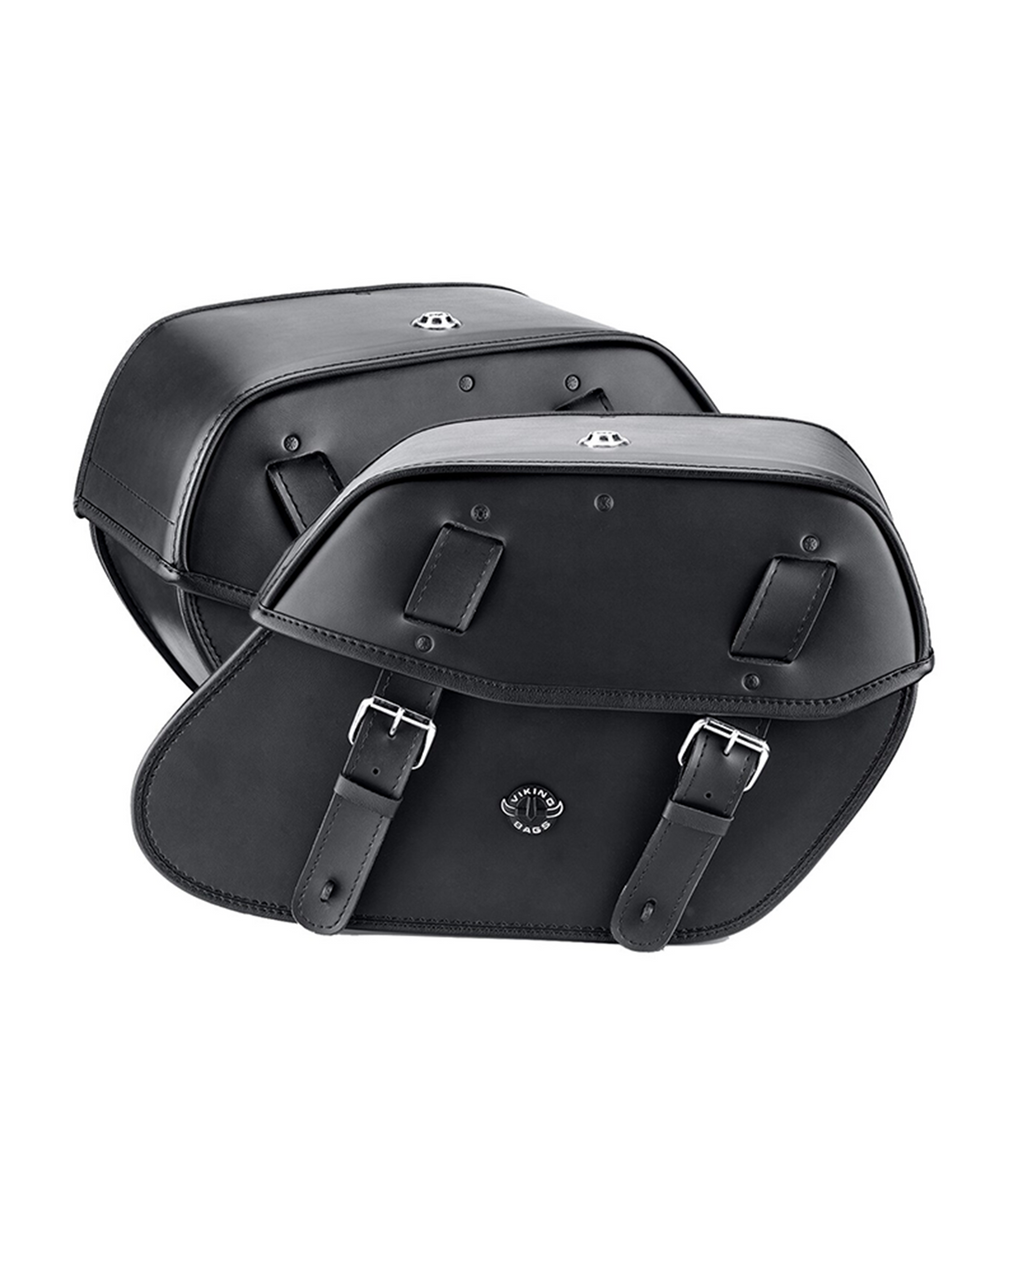 Viking Odin Large Motorcycle Saddlebags For Harley Softail Low Rider Both Bags view